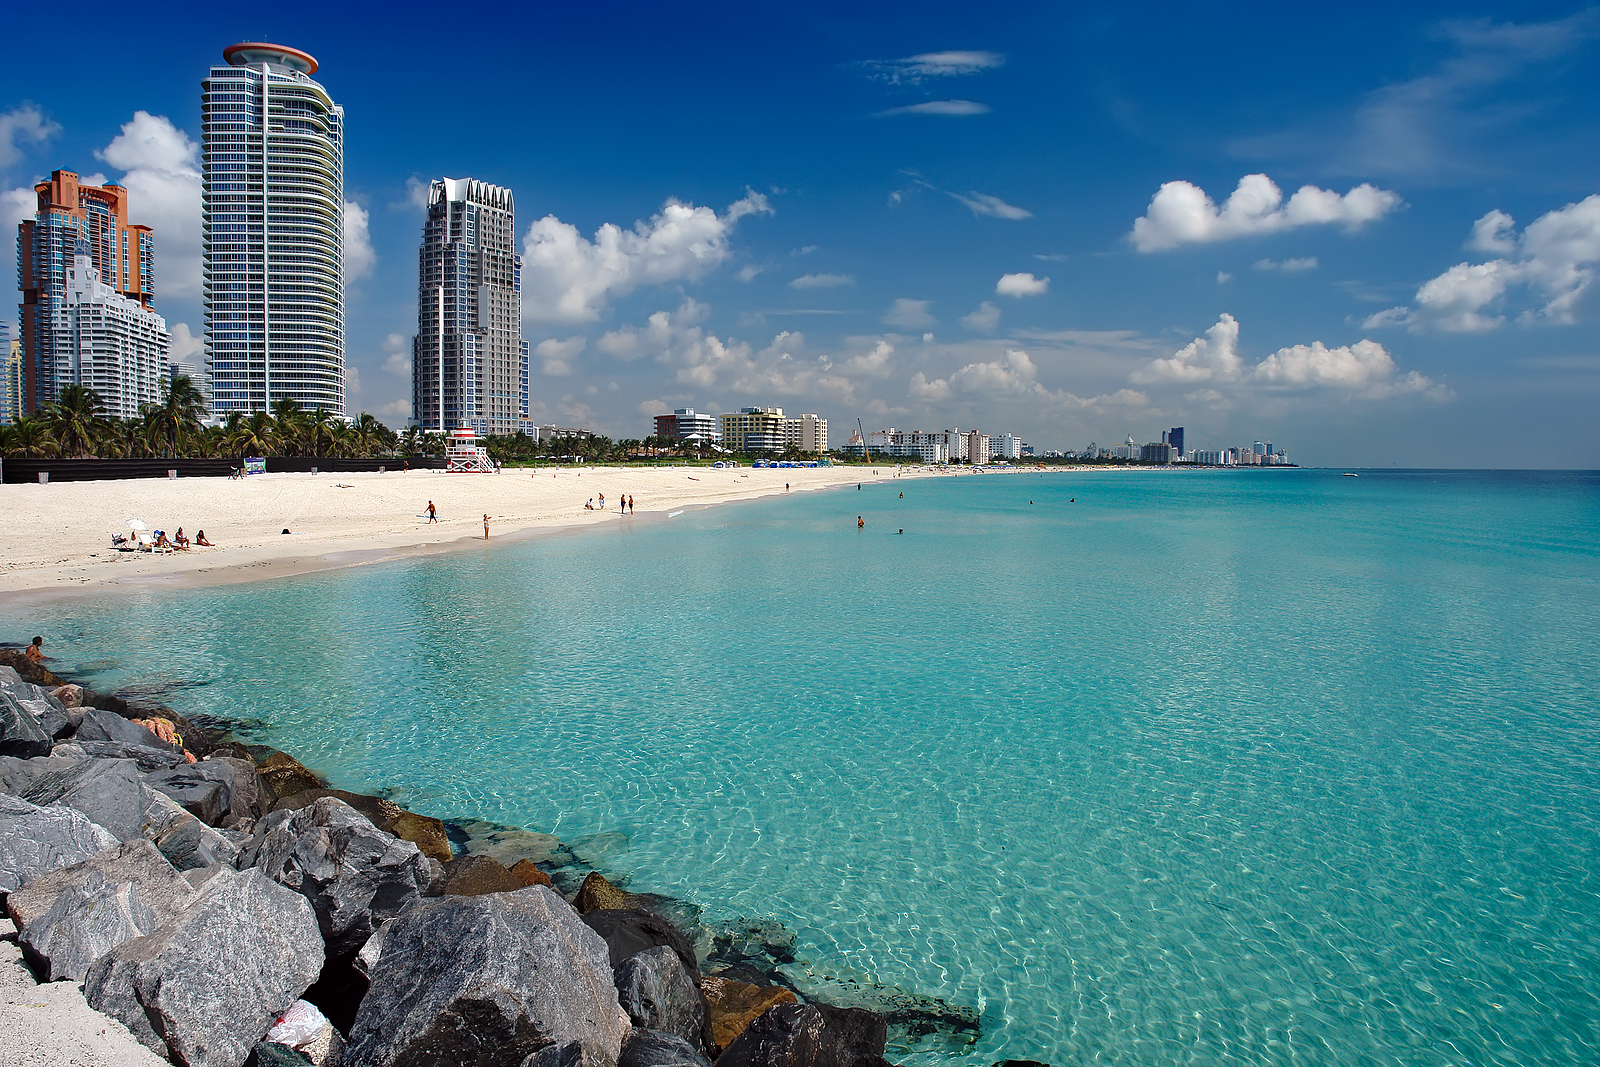 miami beach hd wallpaper miami beach hd wallpaper gallery 1600x1067